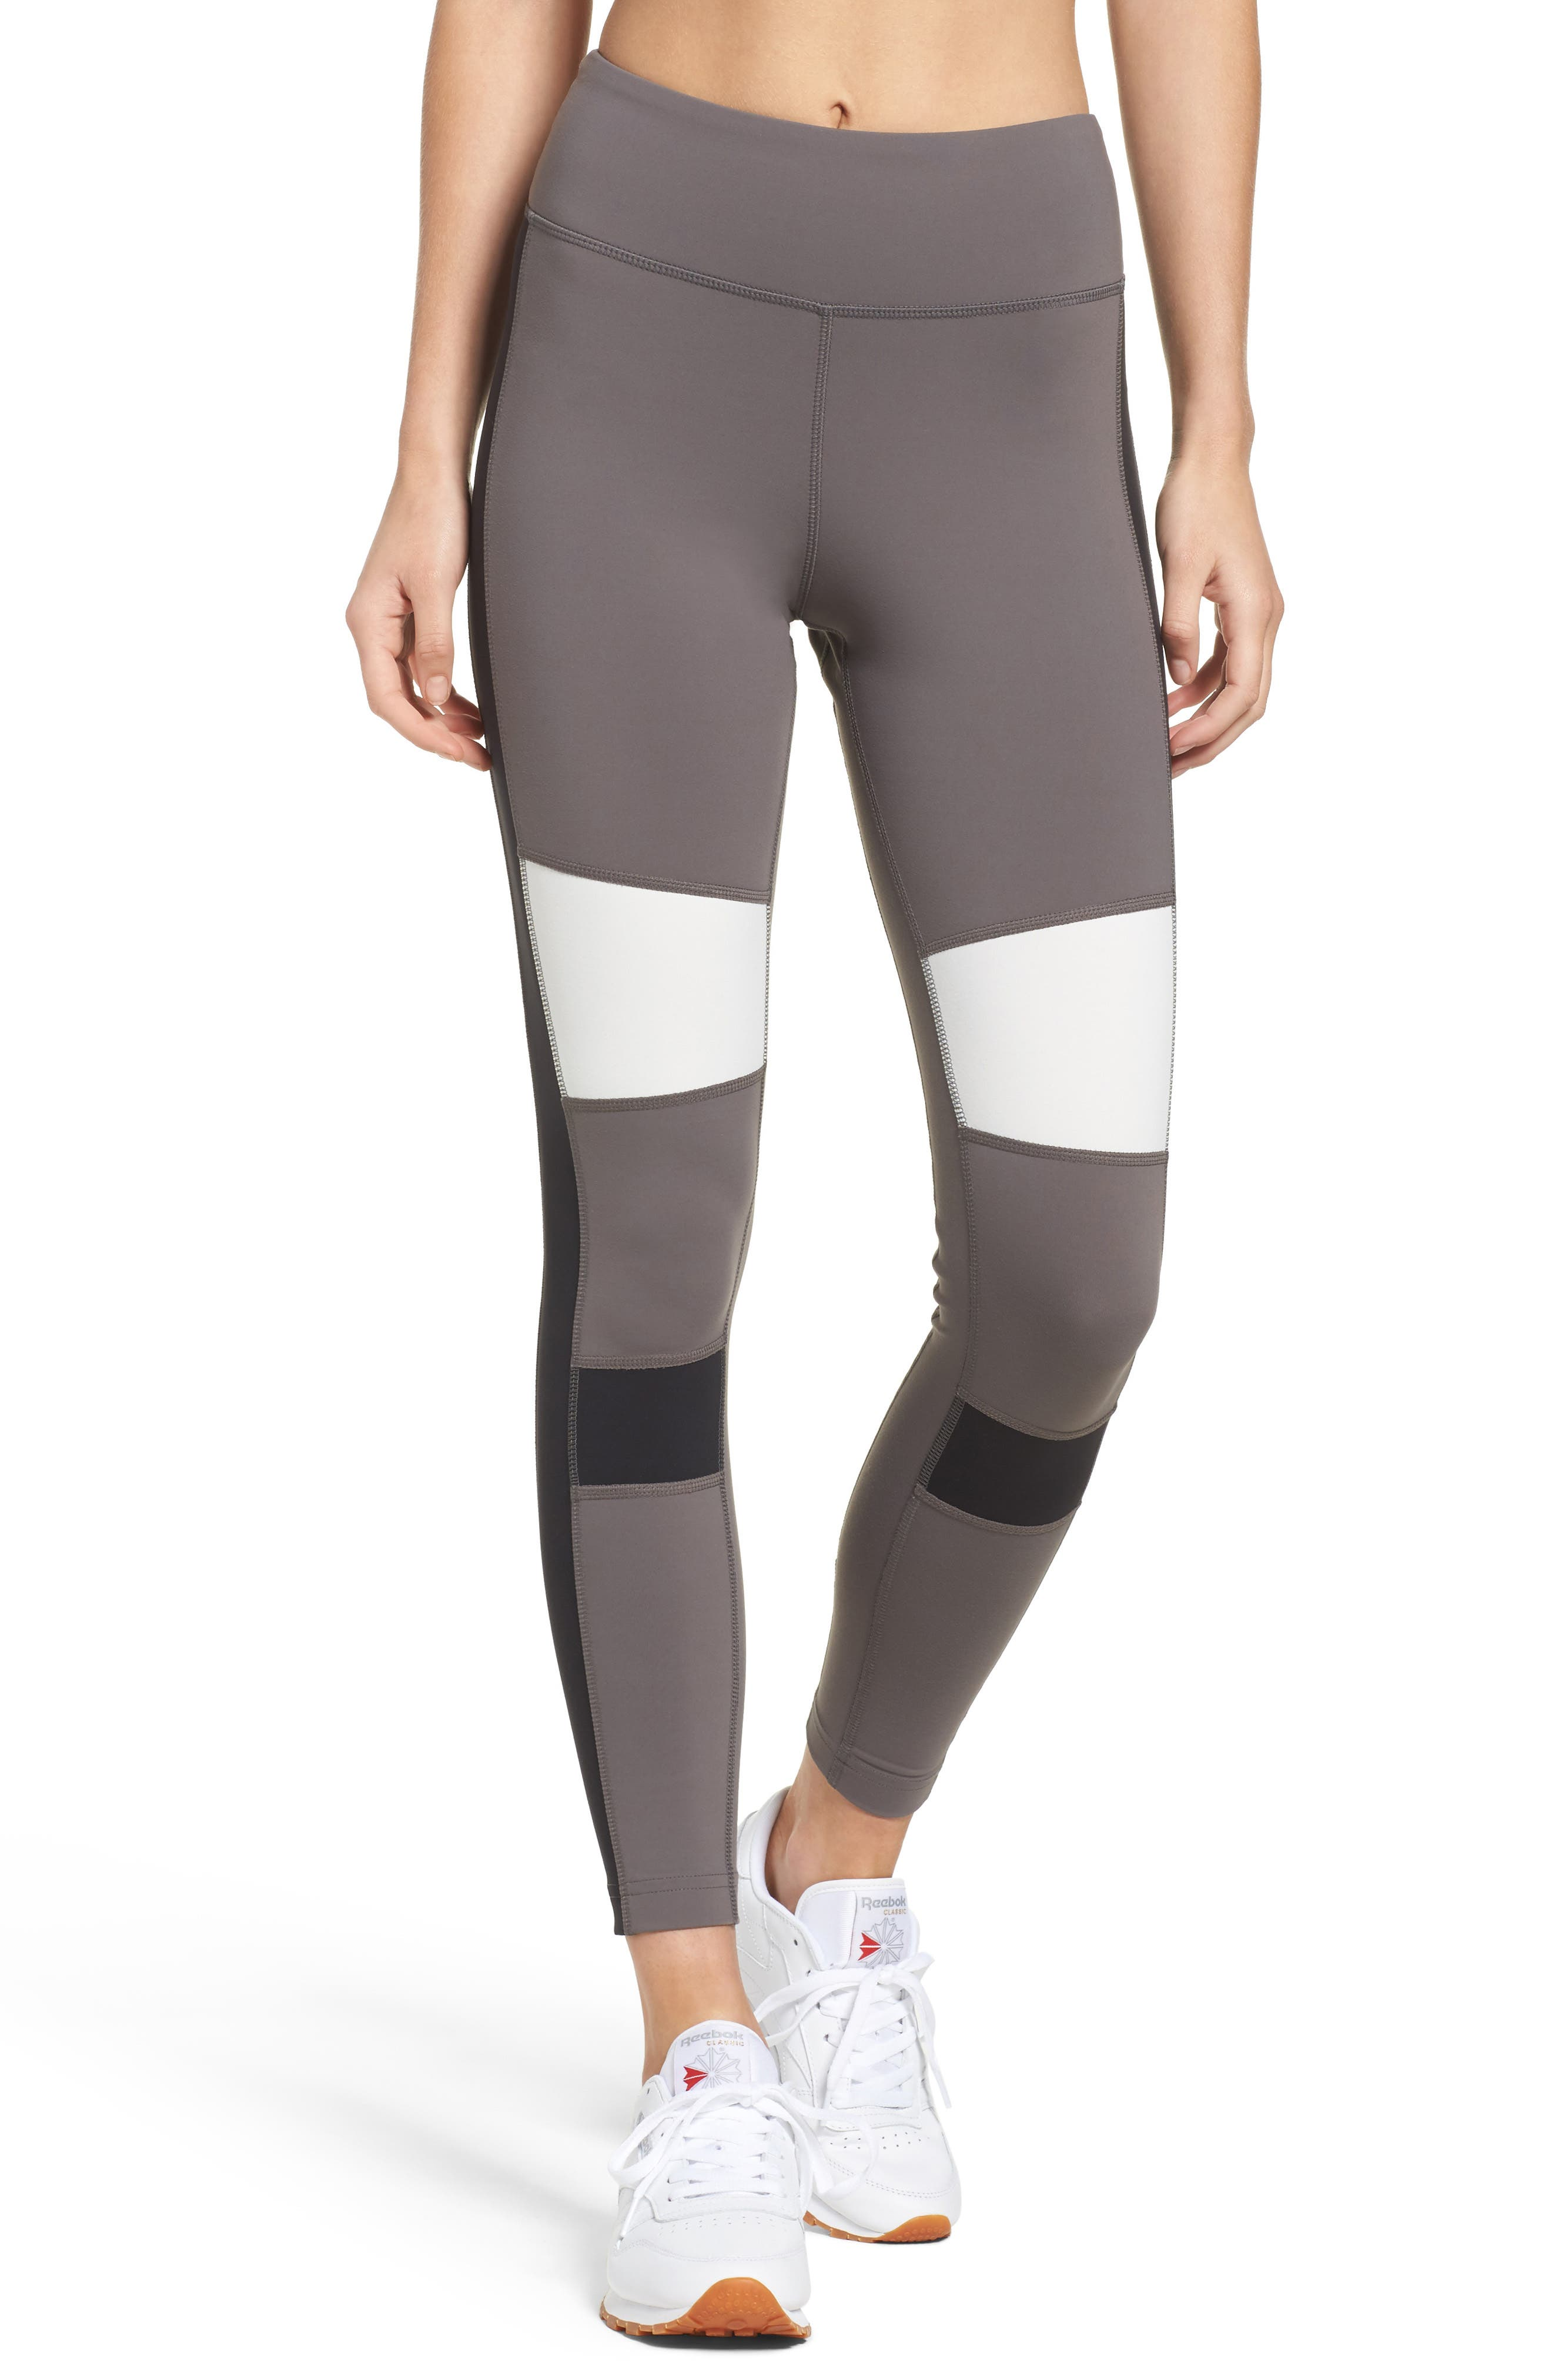 Main Image - Reebok Lux Colorblock Tights